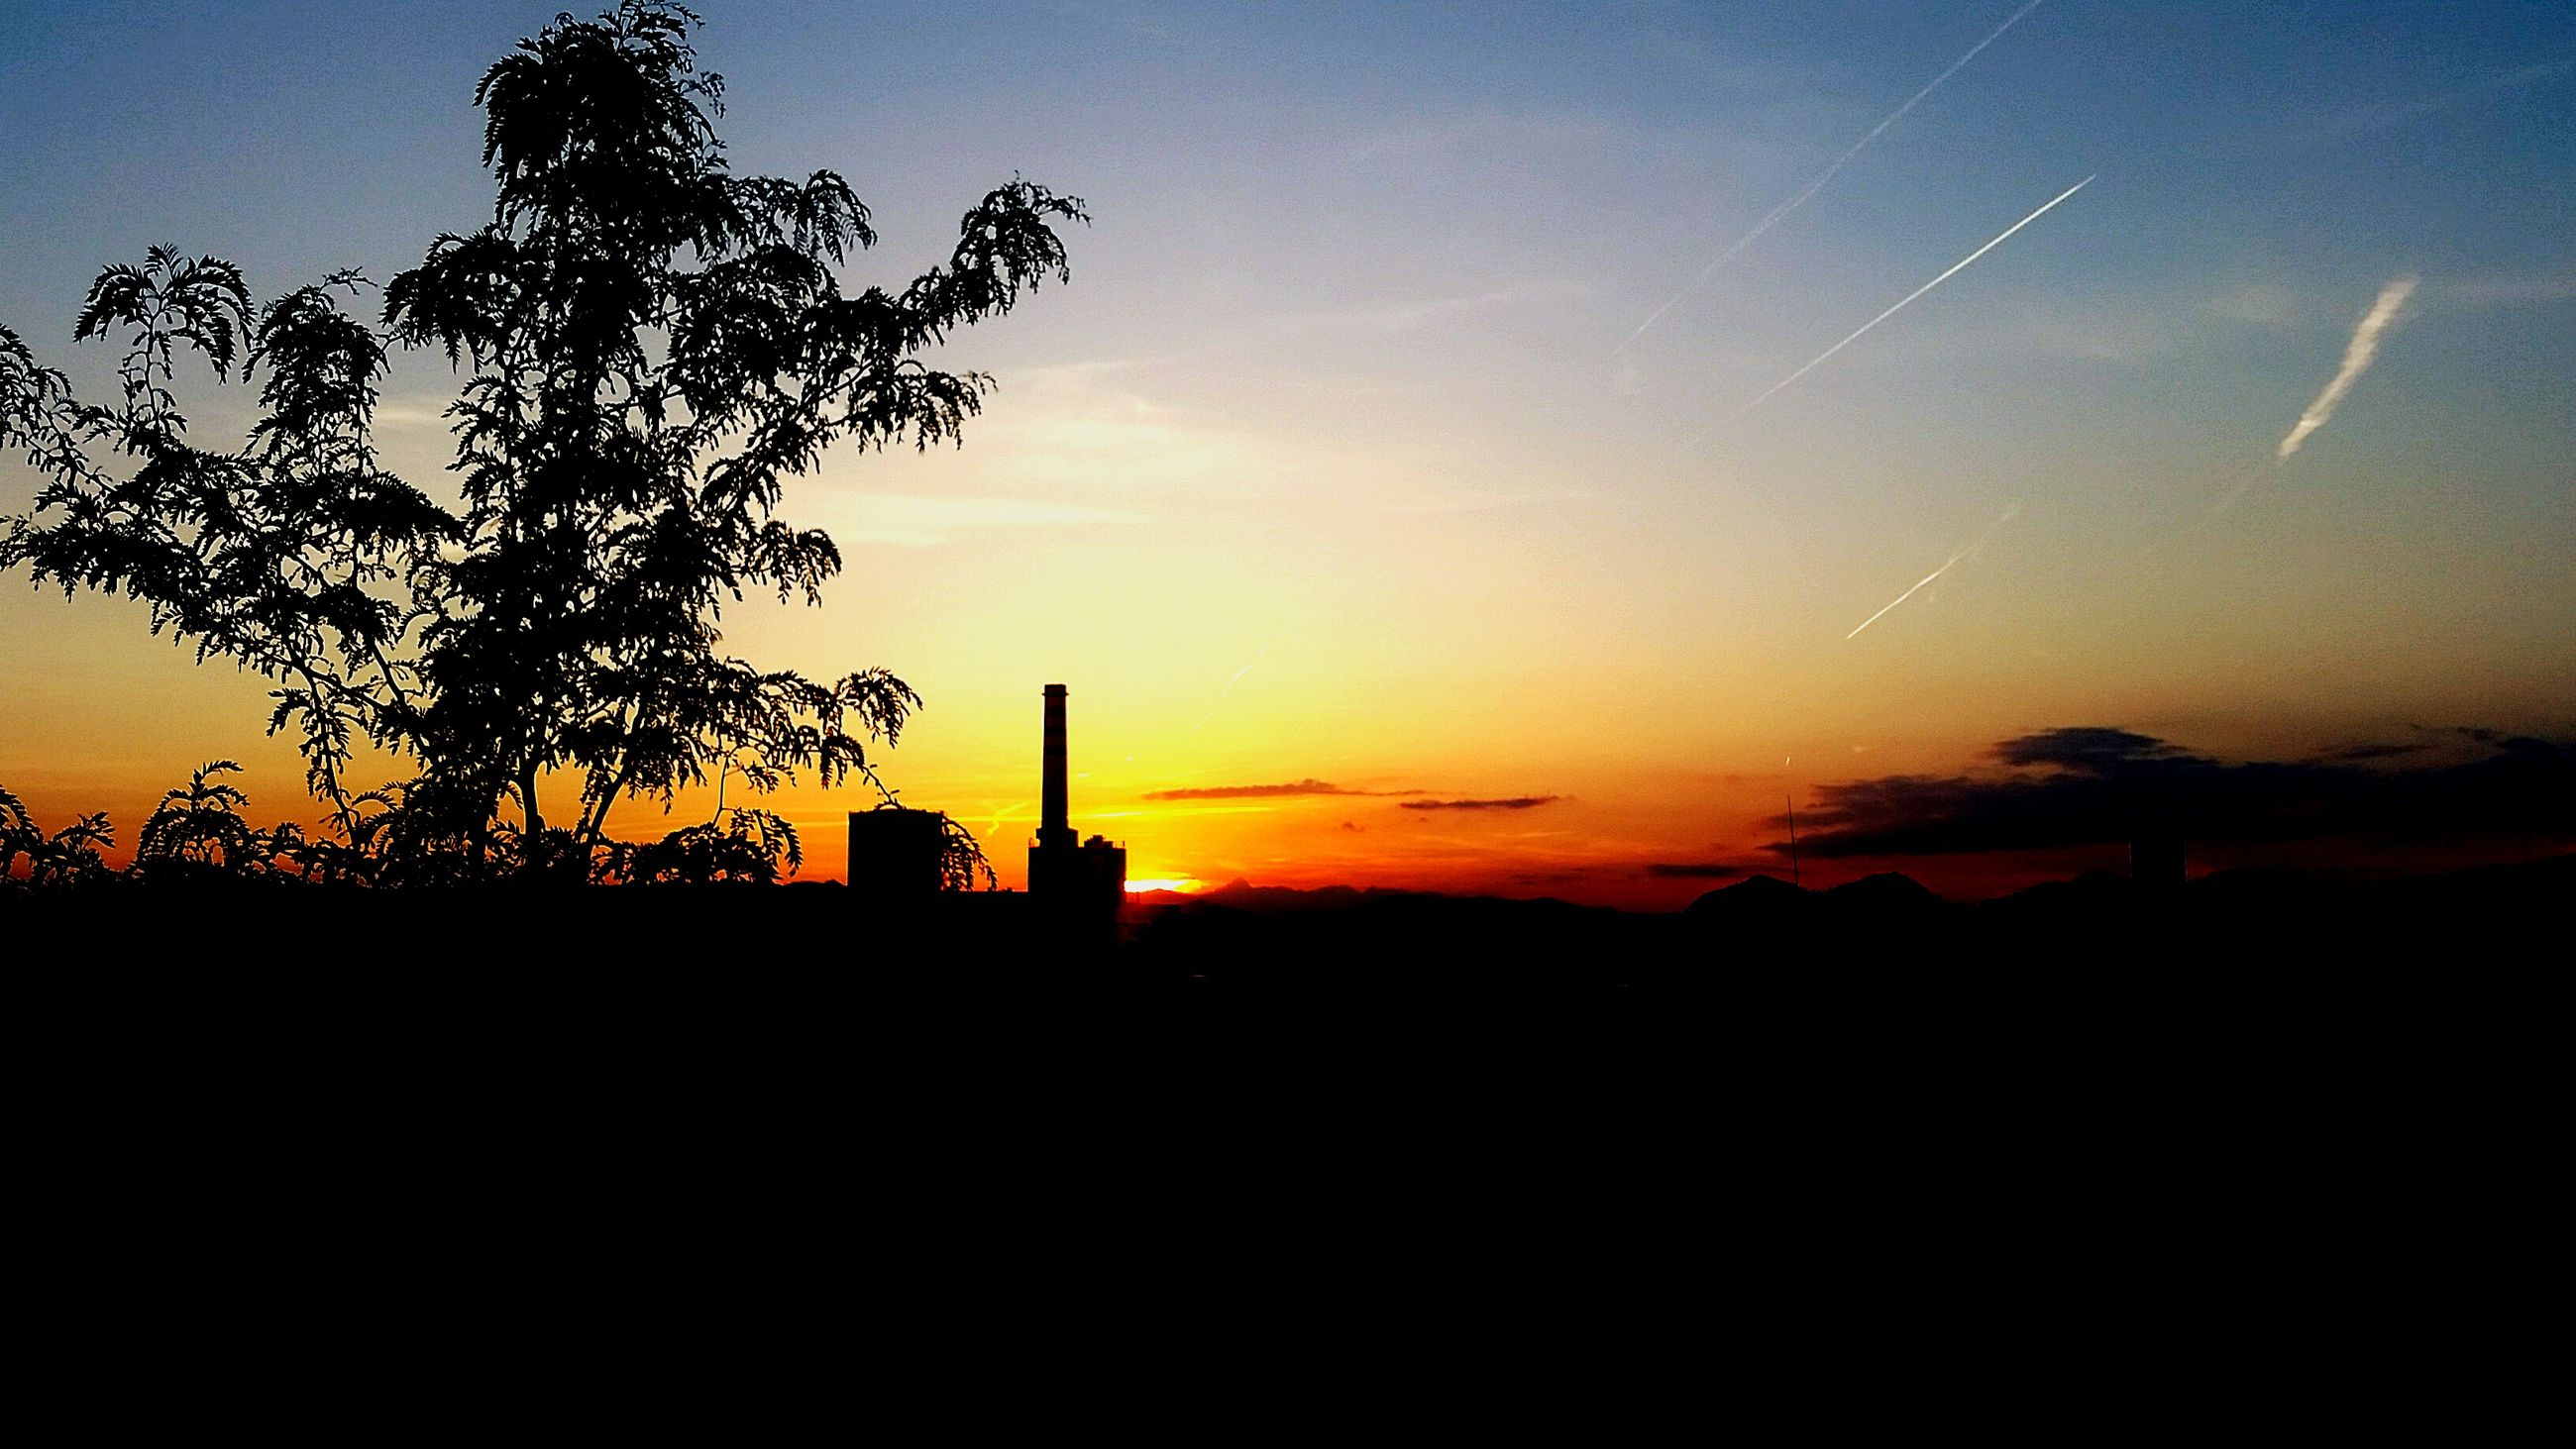 silhouette, sunset, tree, scenics, beauty in nature, sky, tranquility, orange color, tranquil scene, copy space, landscape, nature, dark, built structure, outline, architecture, idyllic, building exterior, field, dusk